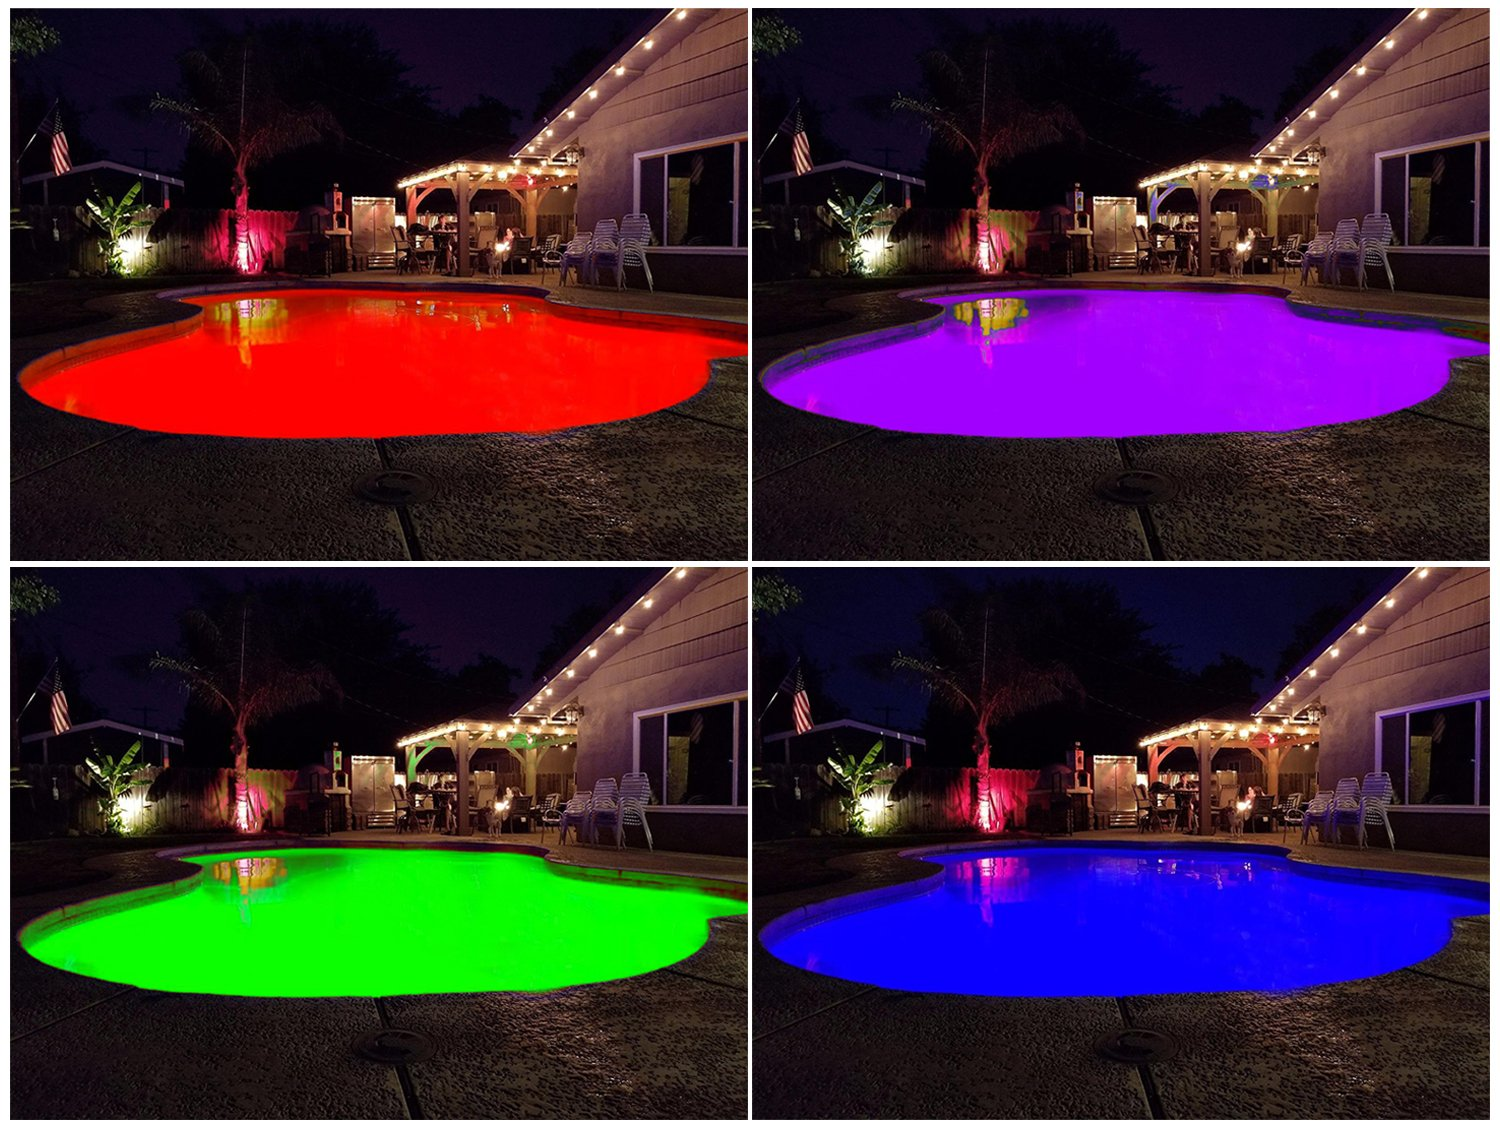 12V 35W Ac/Dc Color Changing Swimming Pool Lights geführt Bulb (Switch Control + Remote Control Type) Fits Light Fixture E26/E27